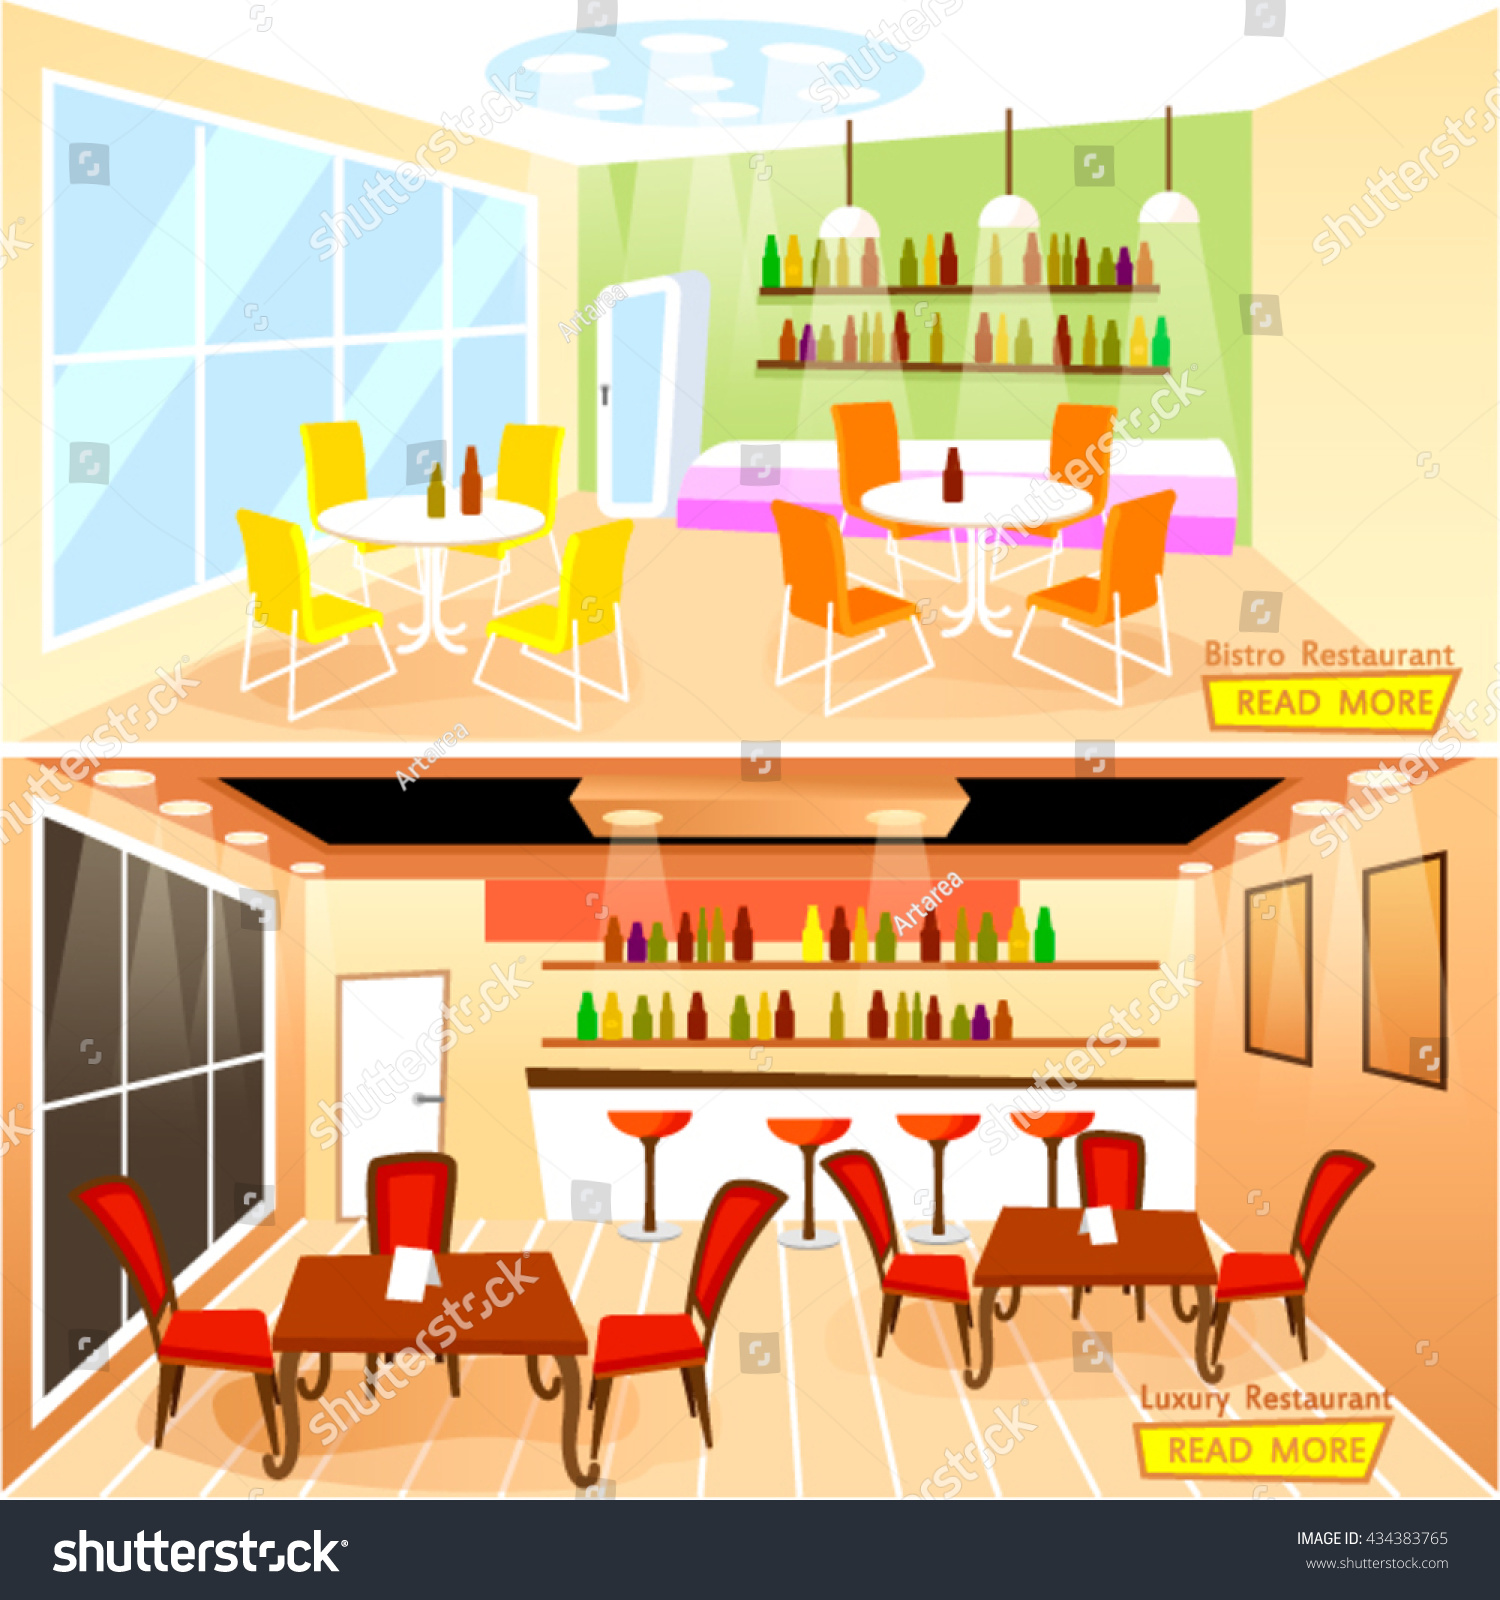 Vector Illustration Of Luxury And Bistro Restaurant Bar Interior In Flat StyleTemplate For Horizontal